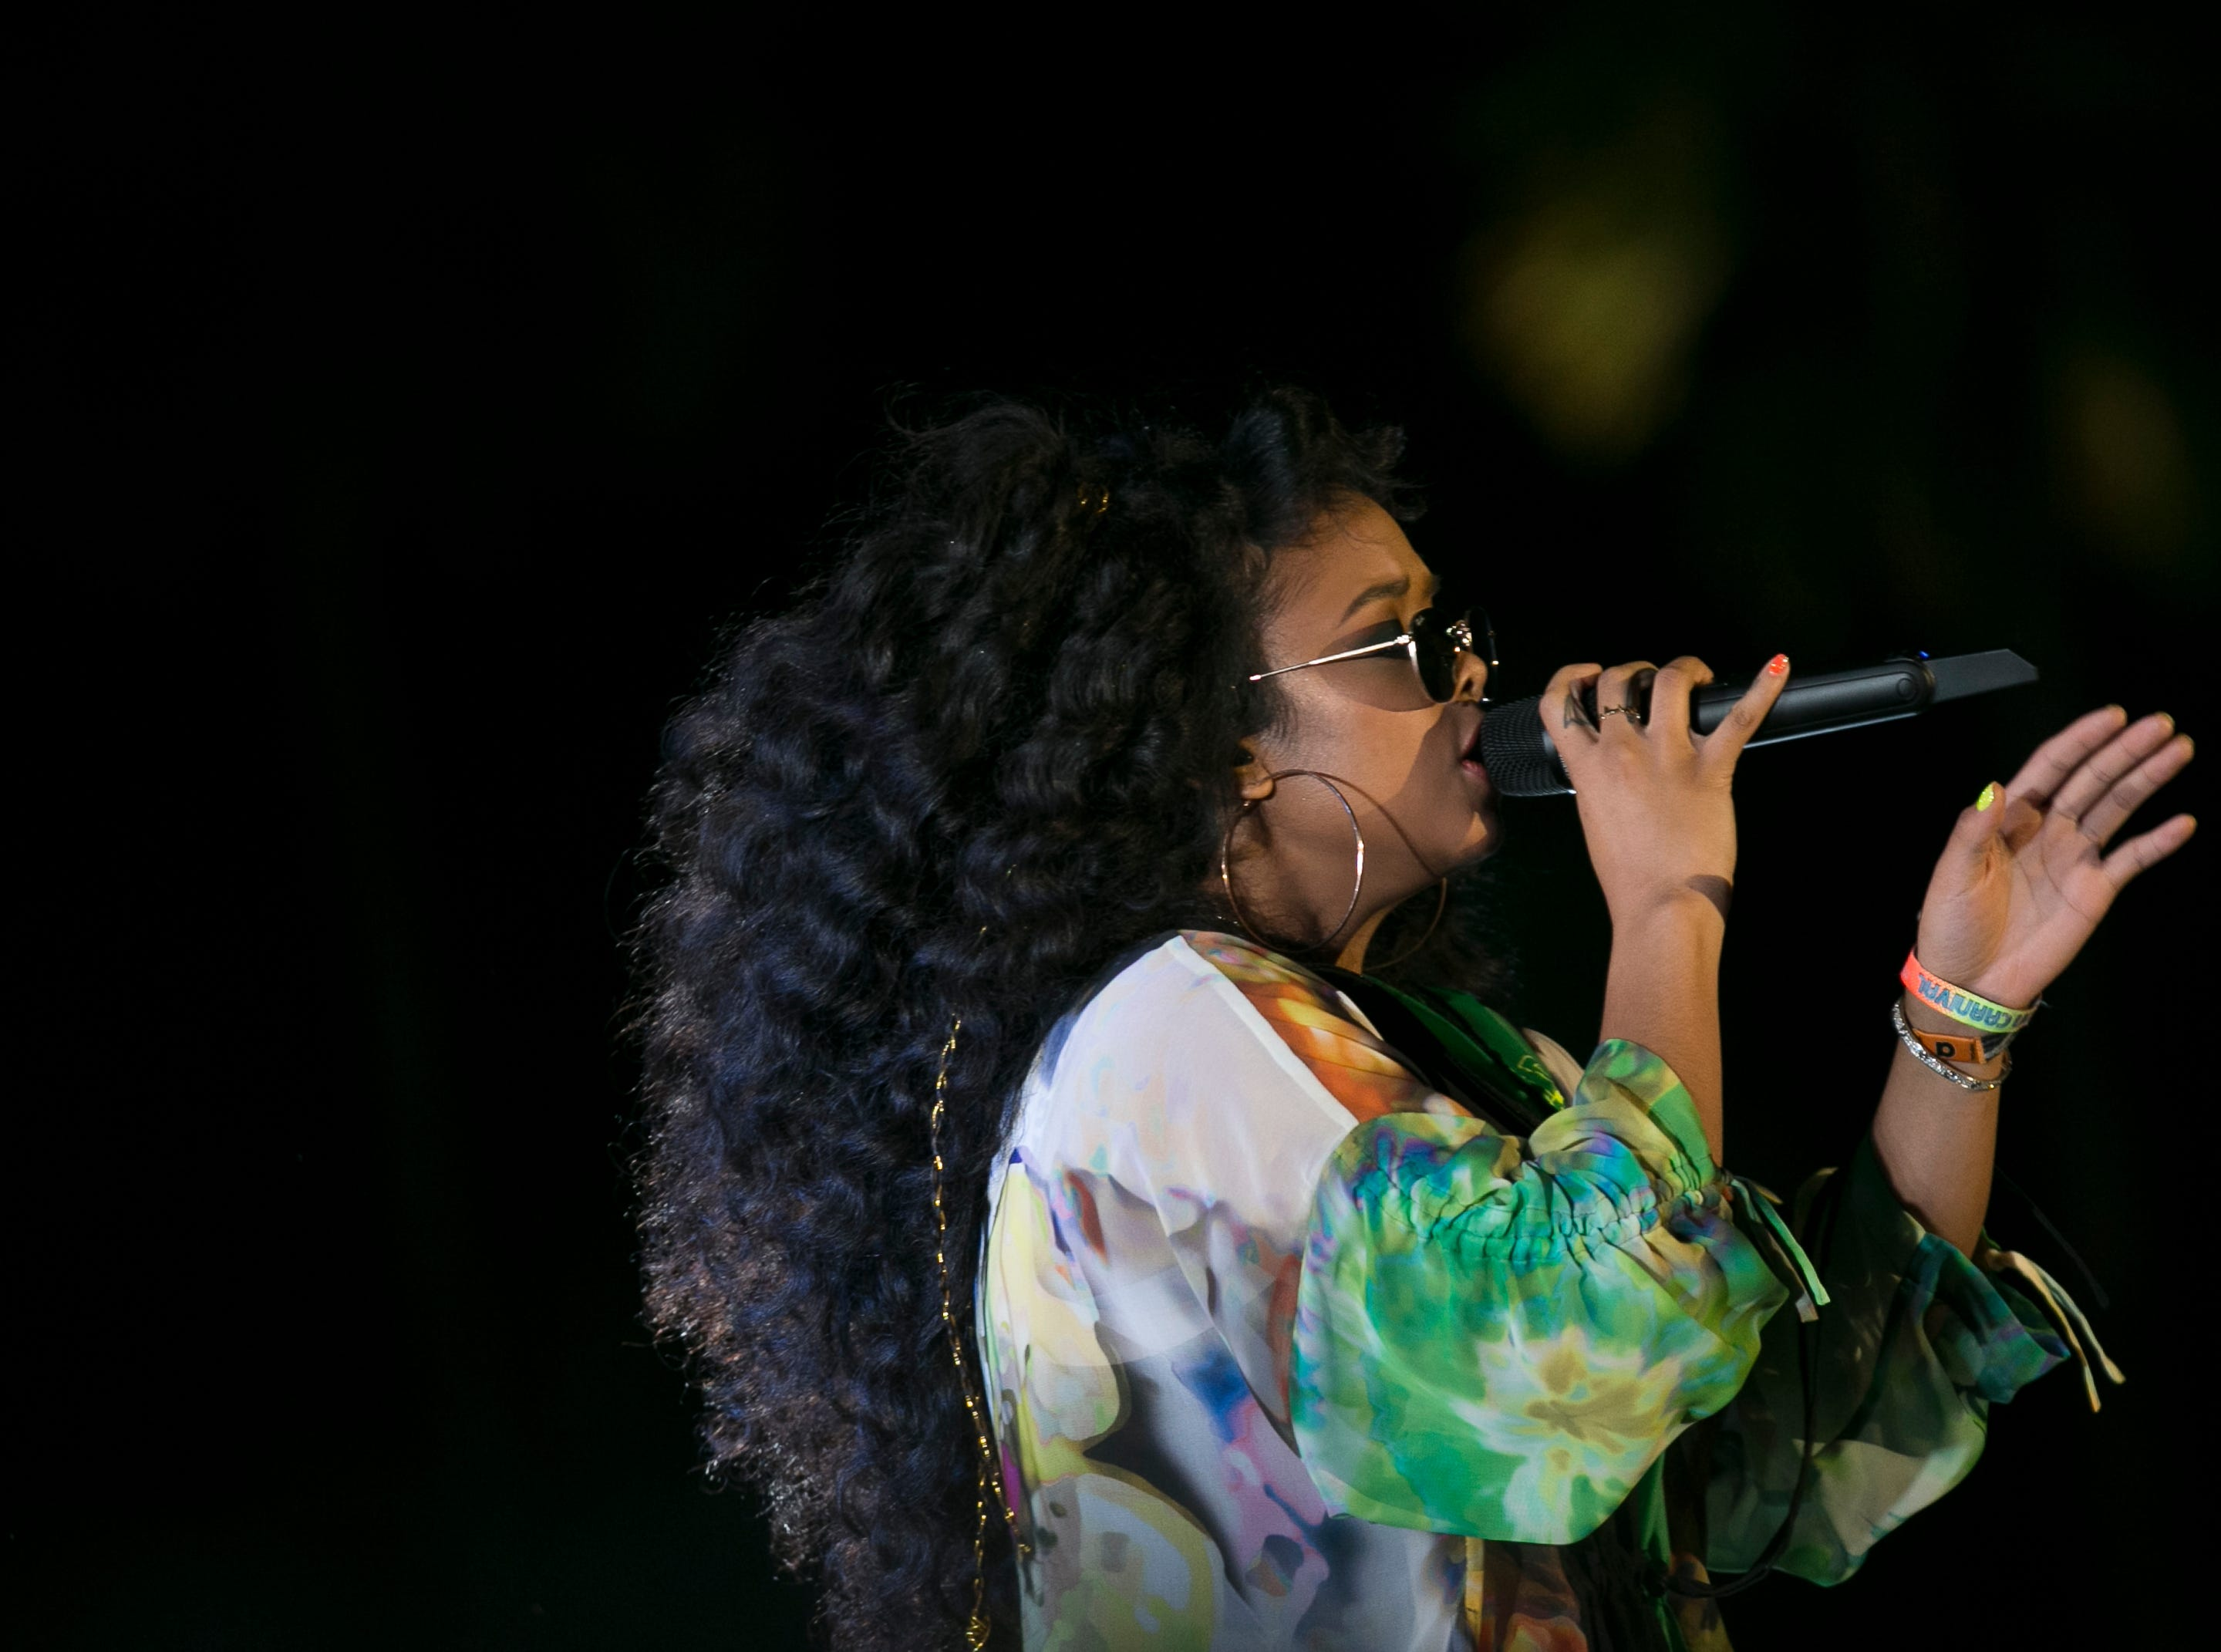 H.E.R performs on the Outdoor stage at the Coachella Valley Music and Arts Festival in Indio, Calif., on Sunday, April 14, 2019.